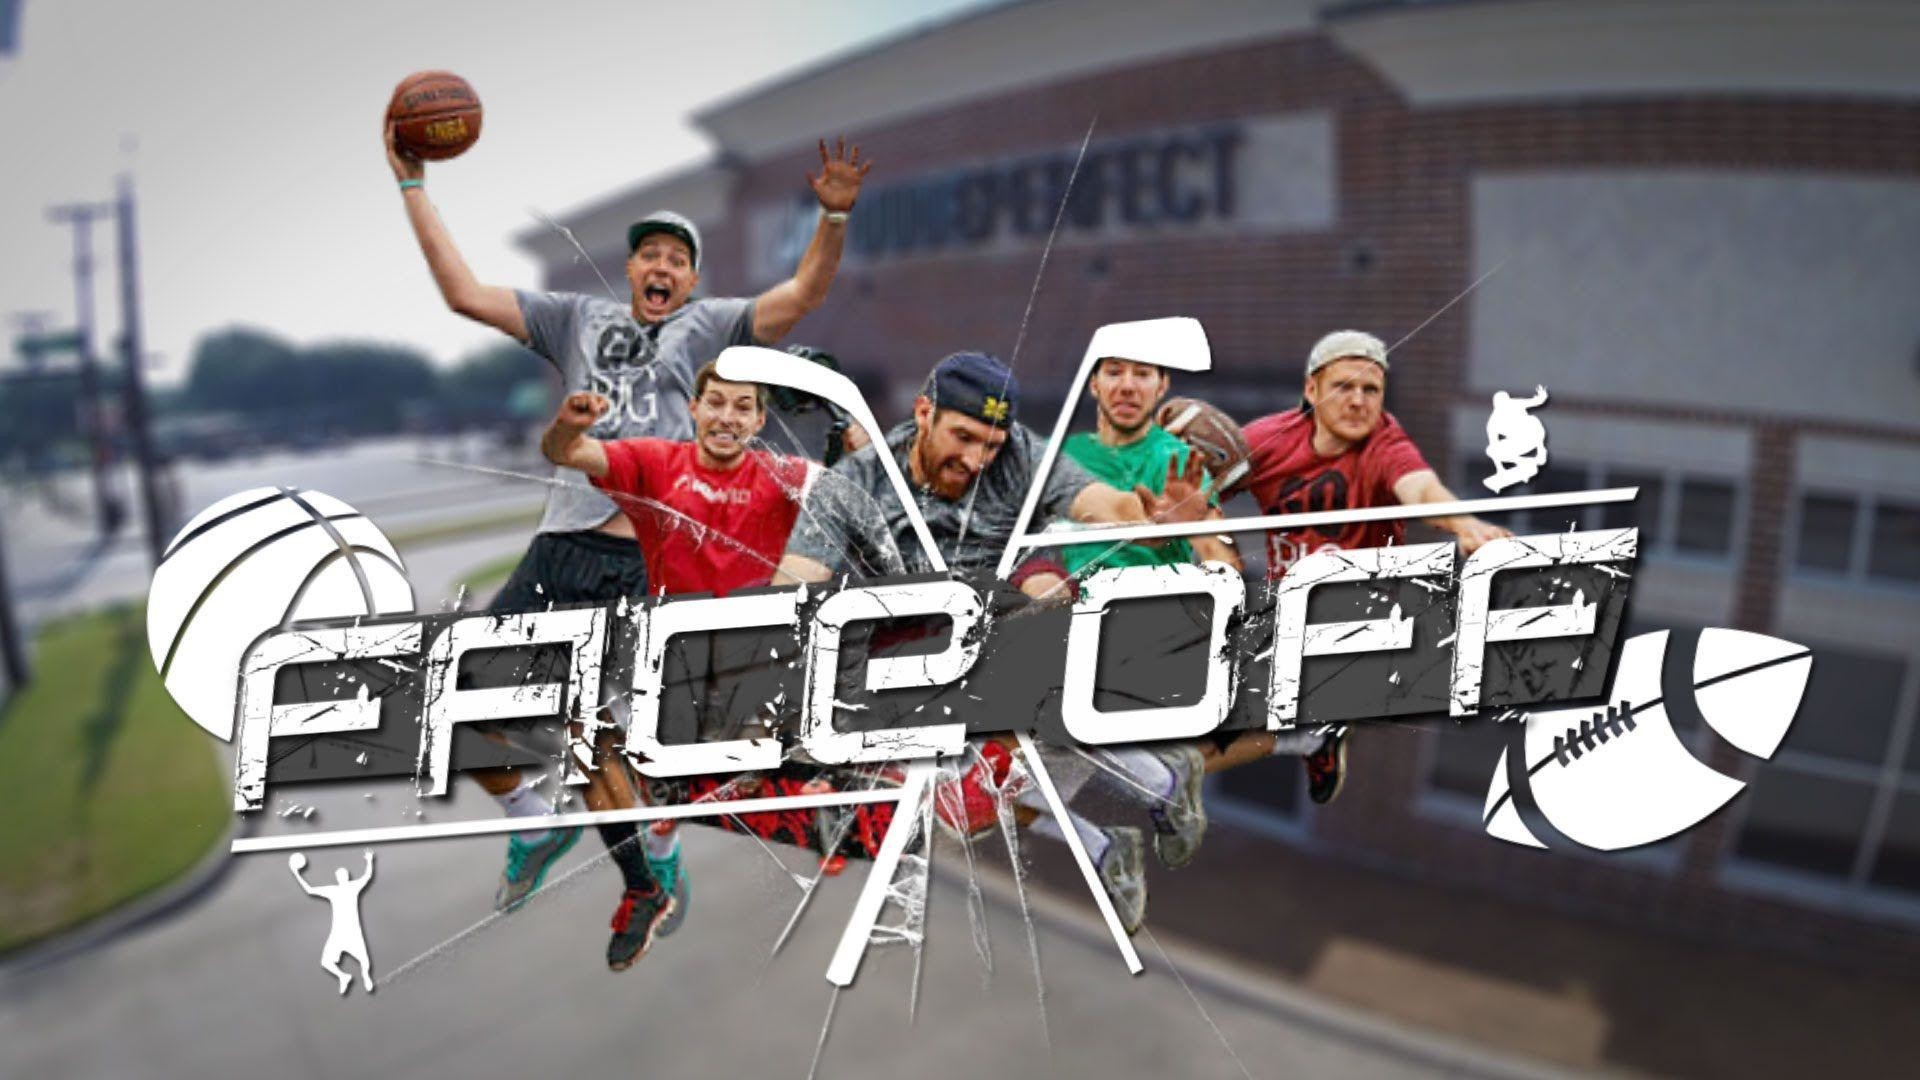 1920x1080 Dude Perfect Faceoff HD Images and Wallpaper - Digitalhint.net